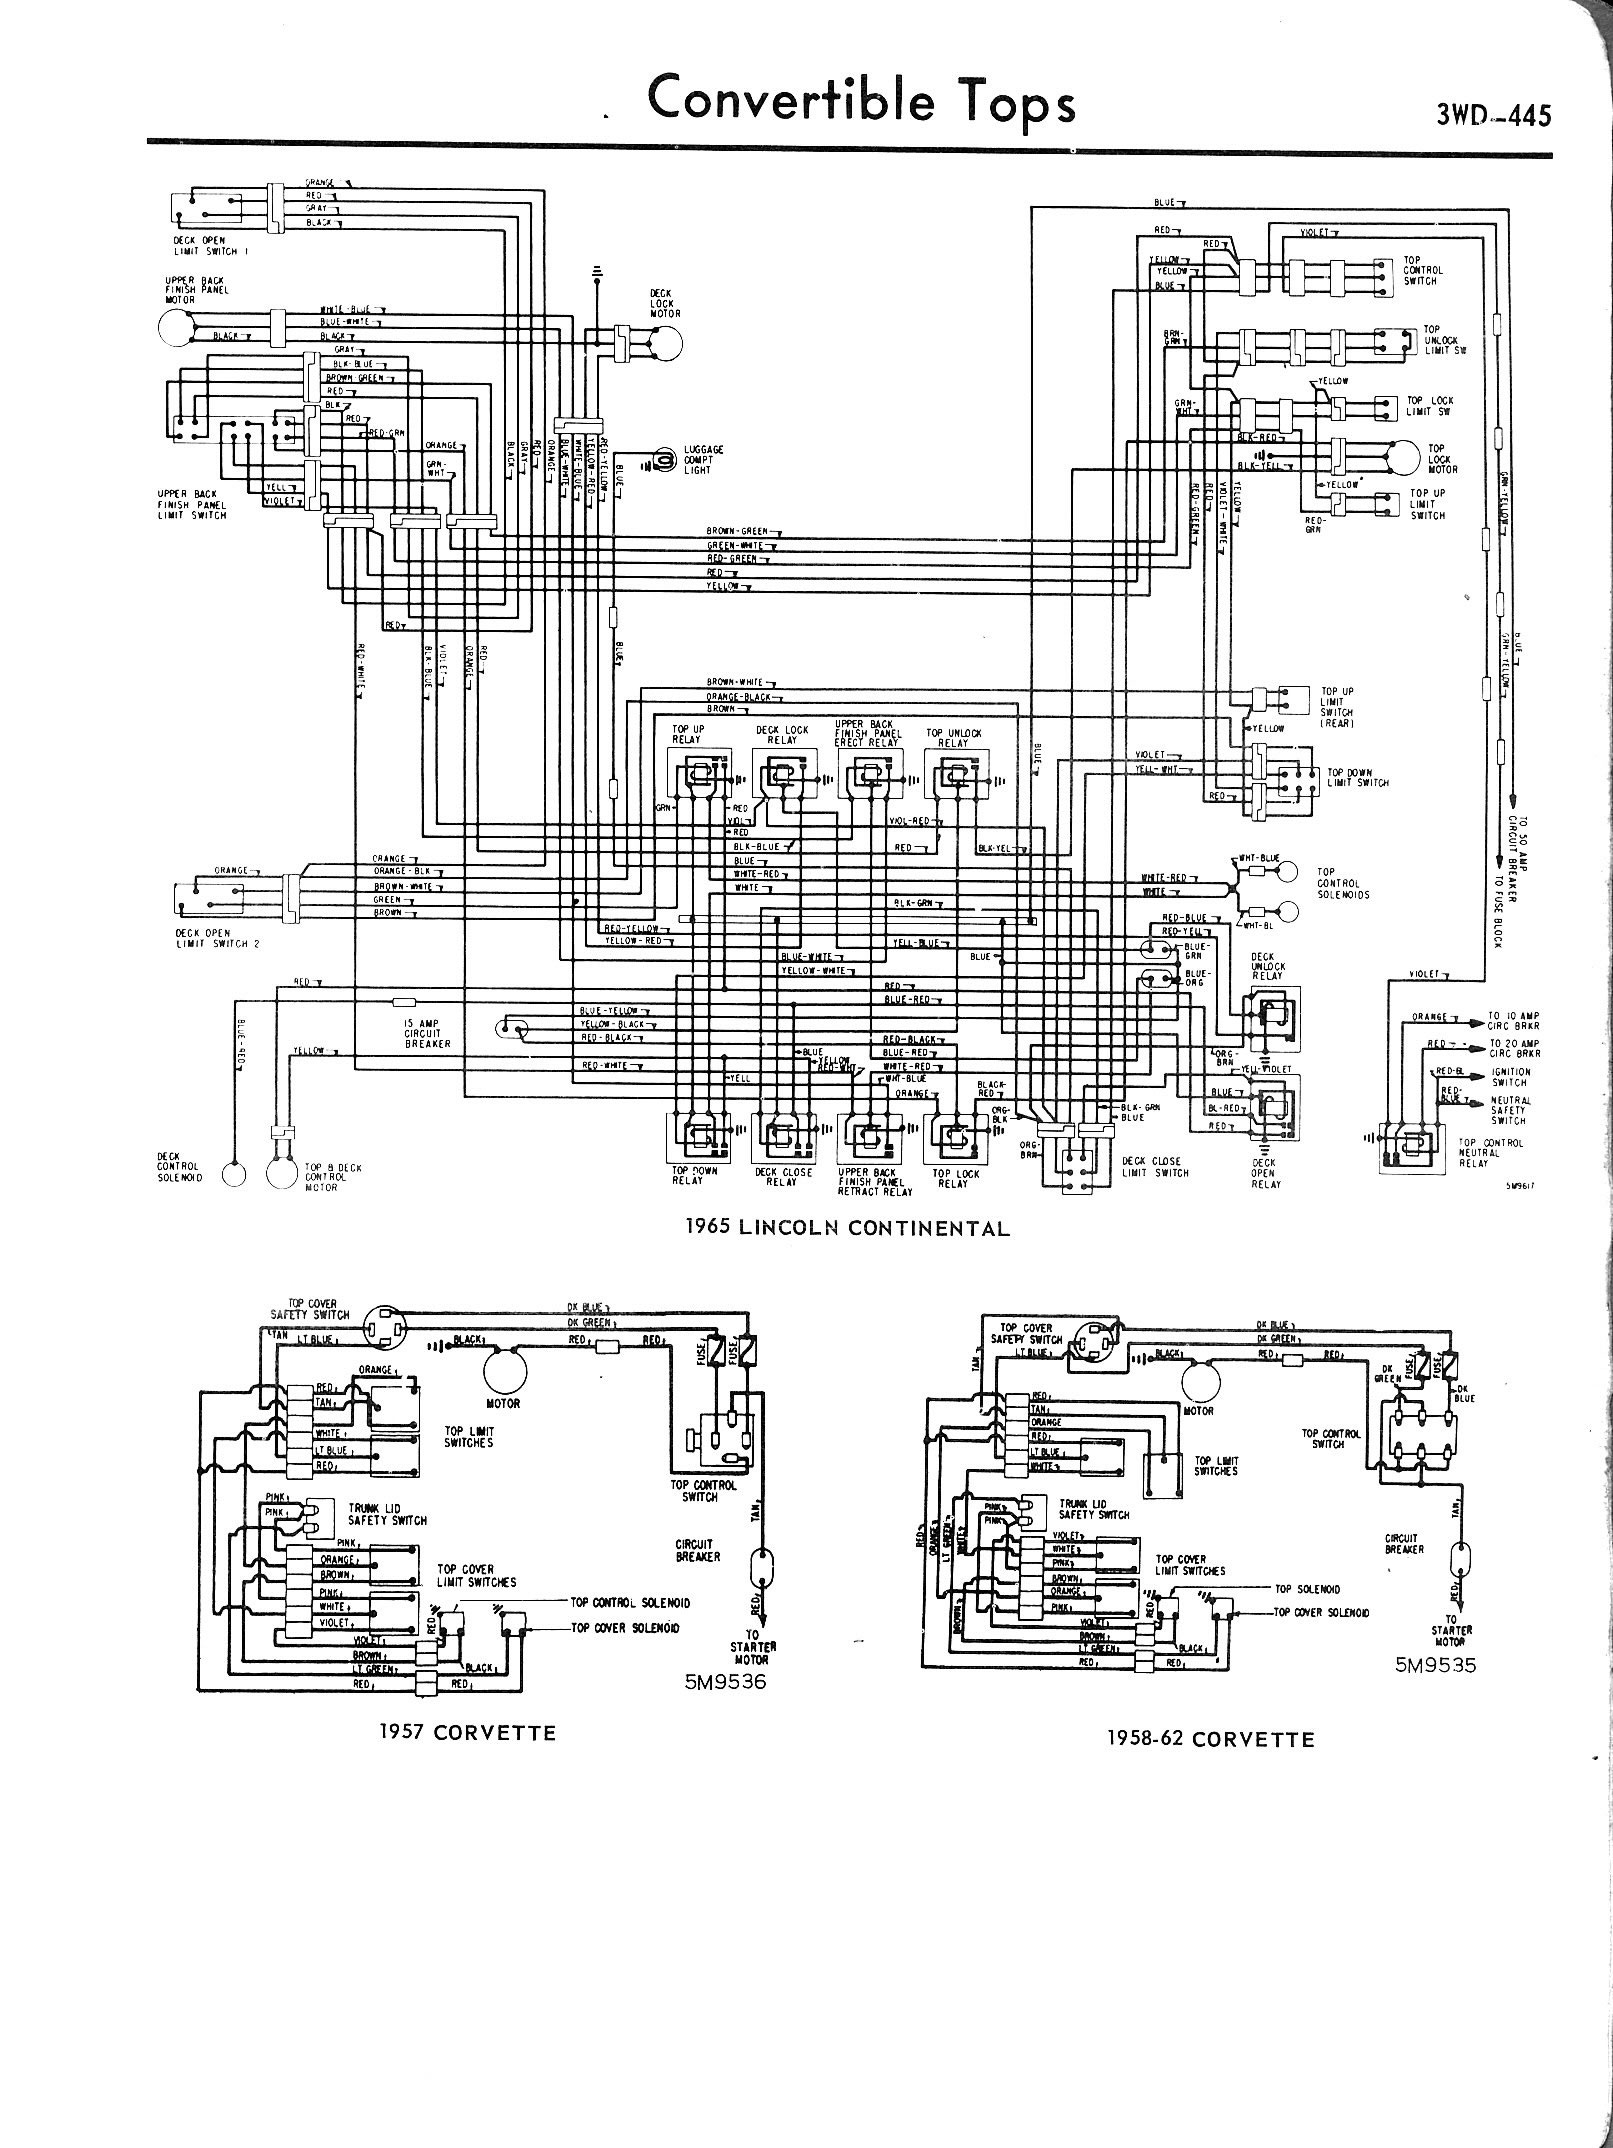 Ford Lincoln Continental Wiring Diagram Part 1 Automotive Wiring